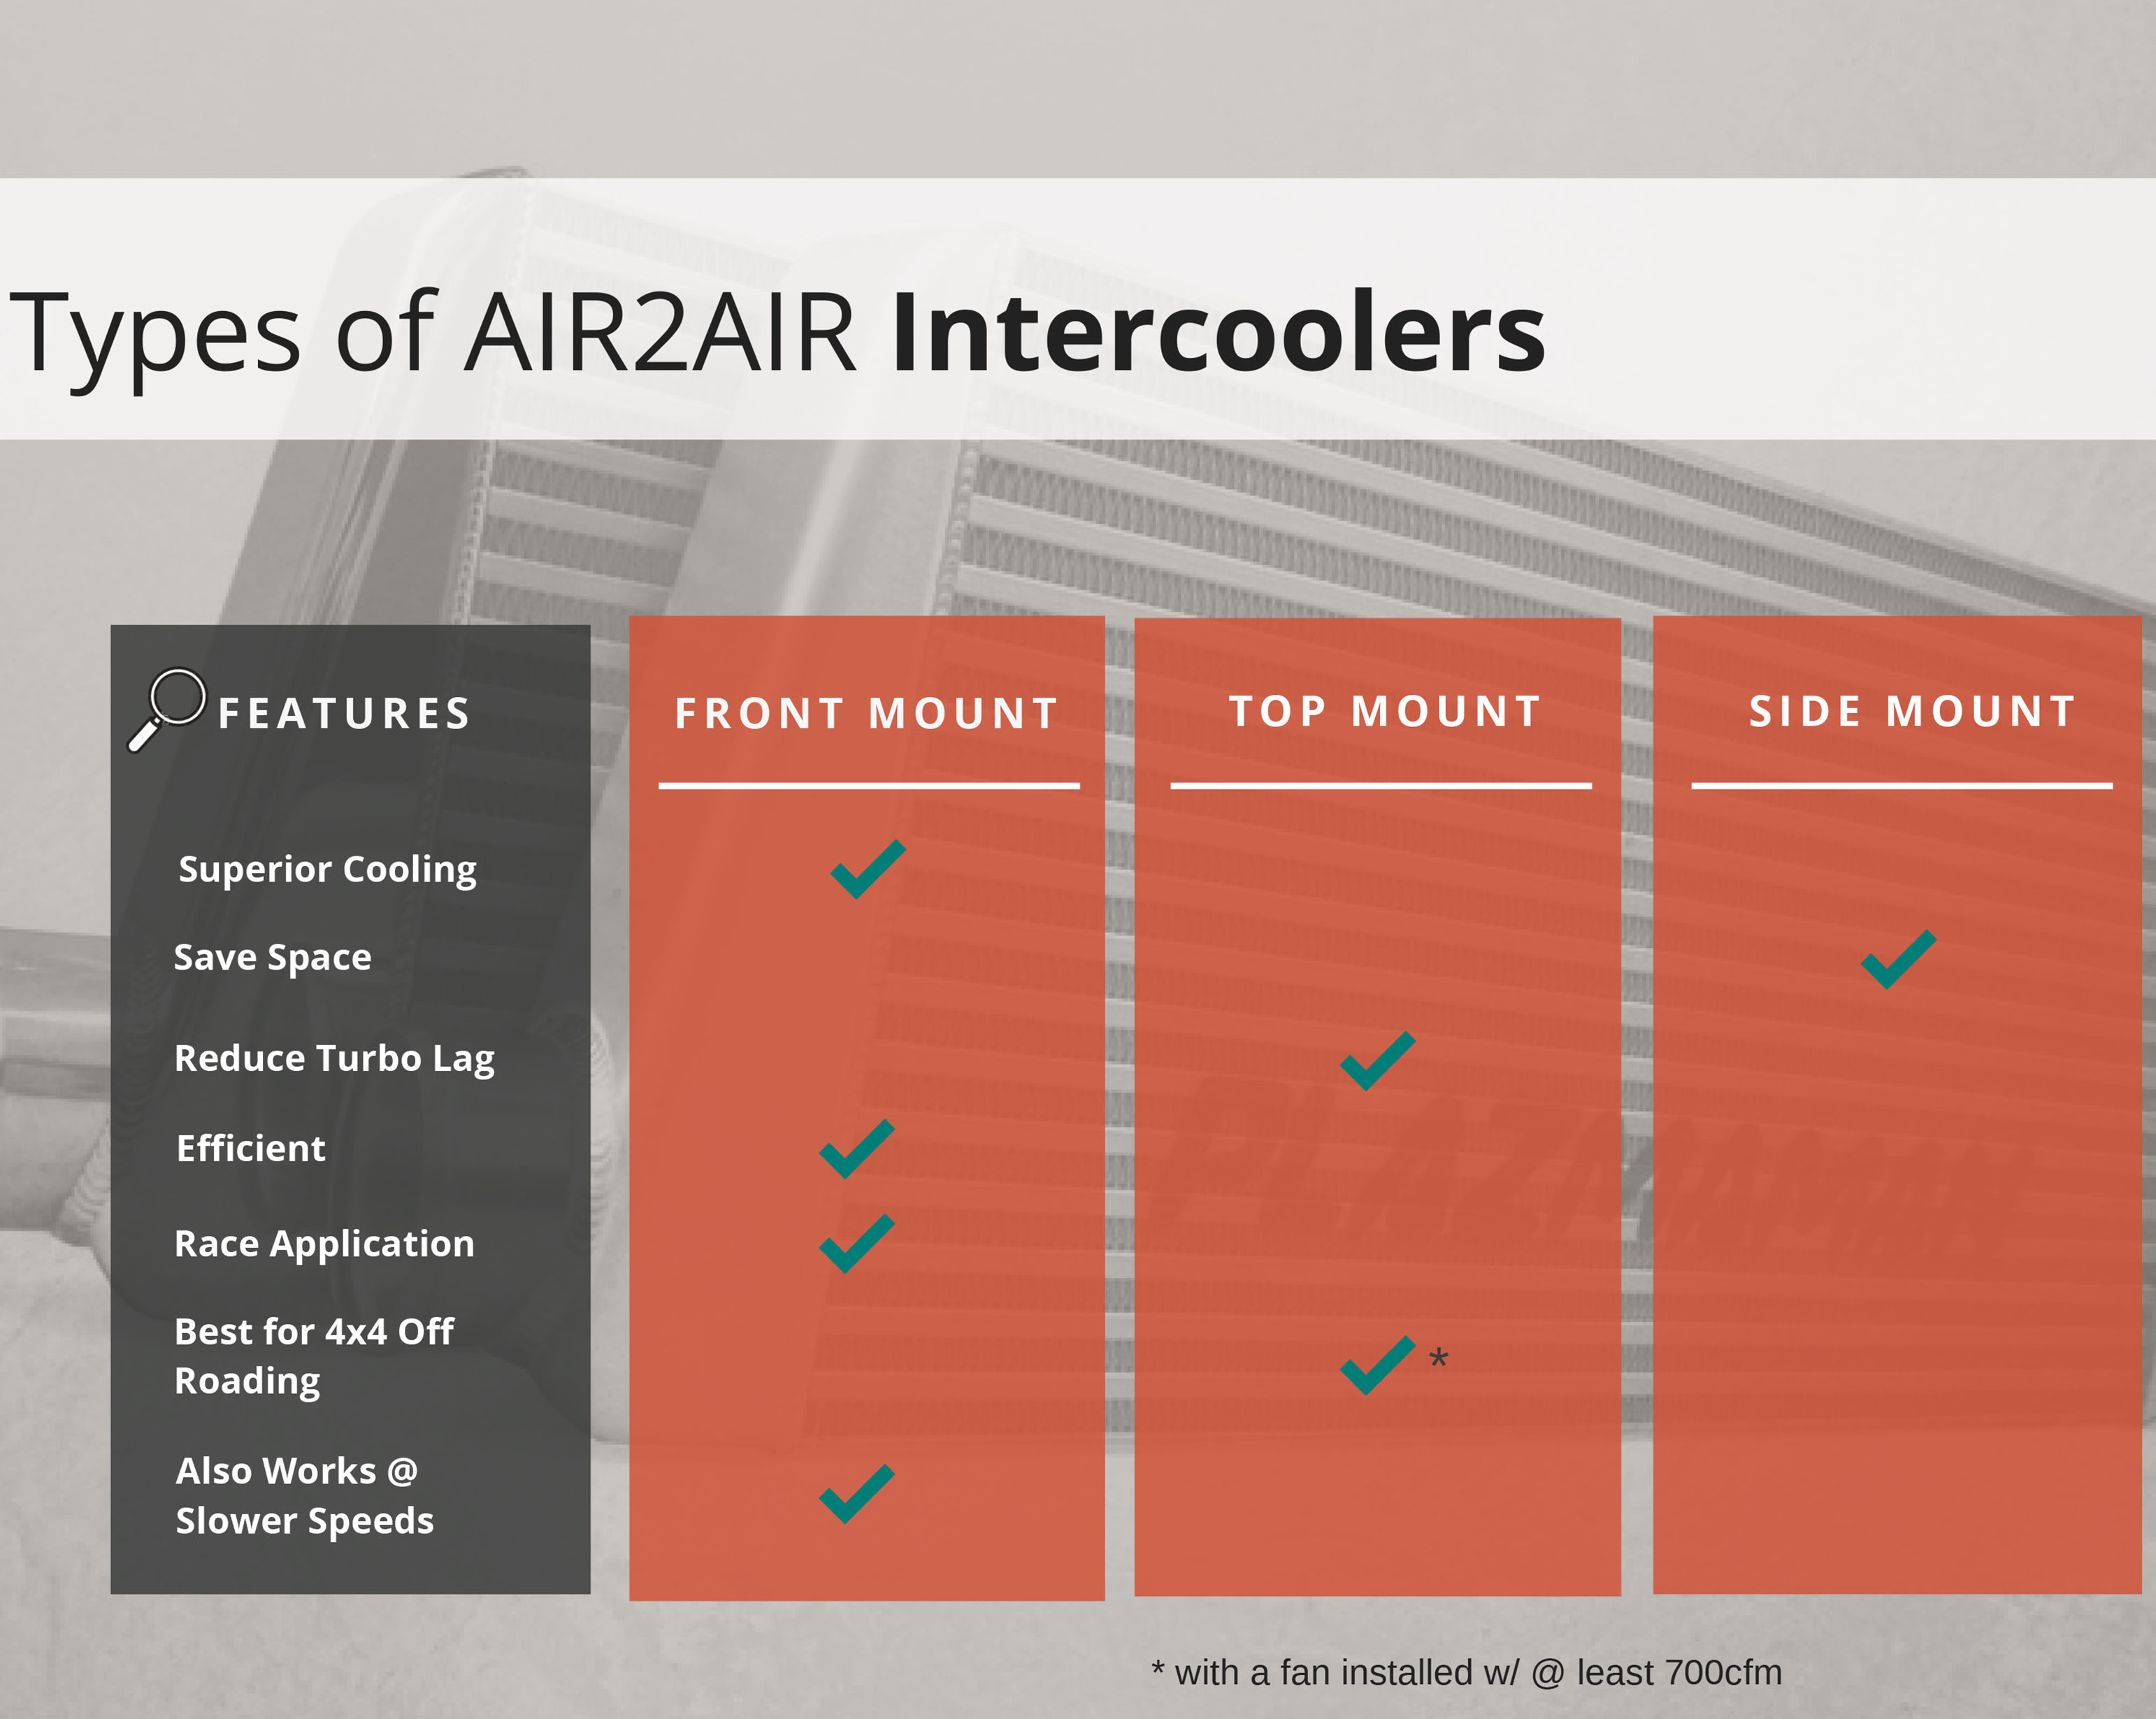 What makes Plazmaman Intercoolers so great?